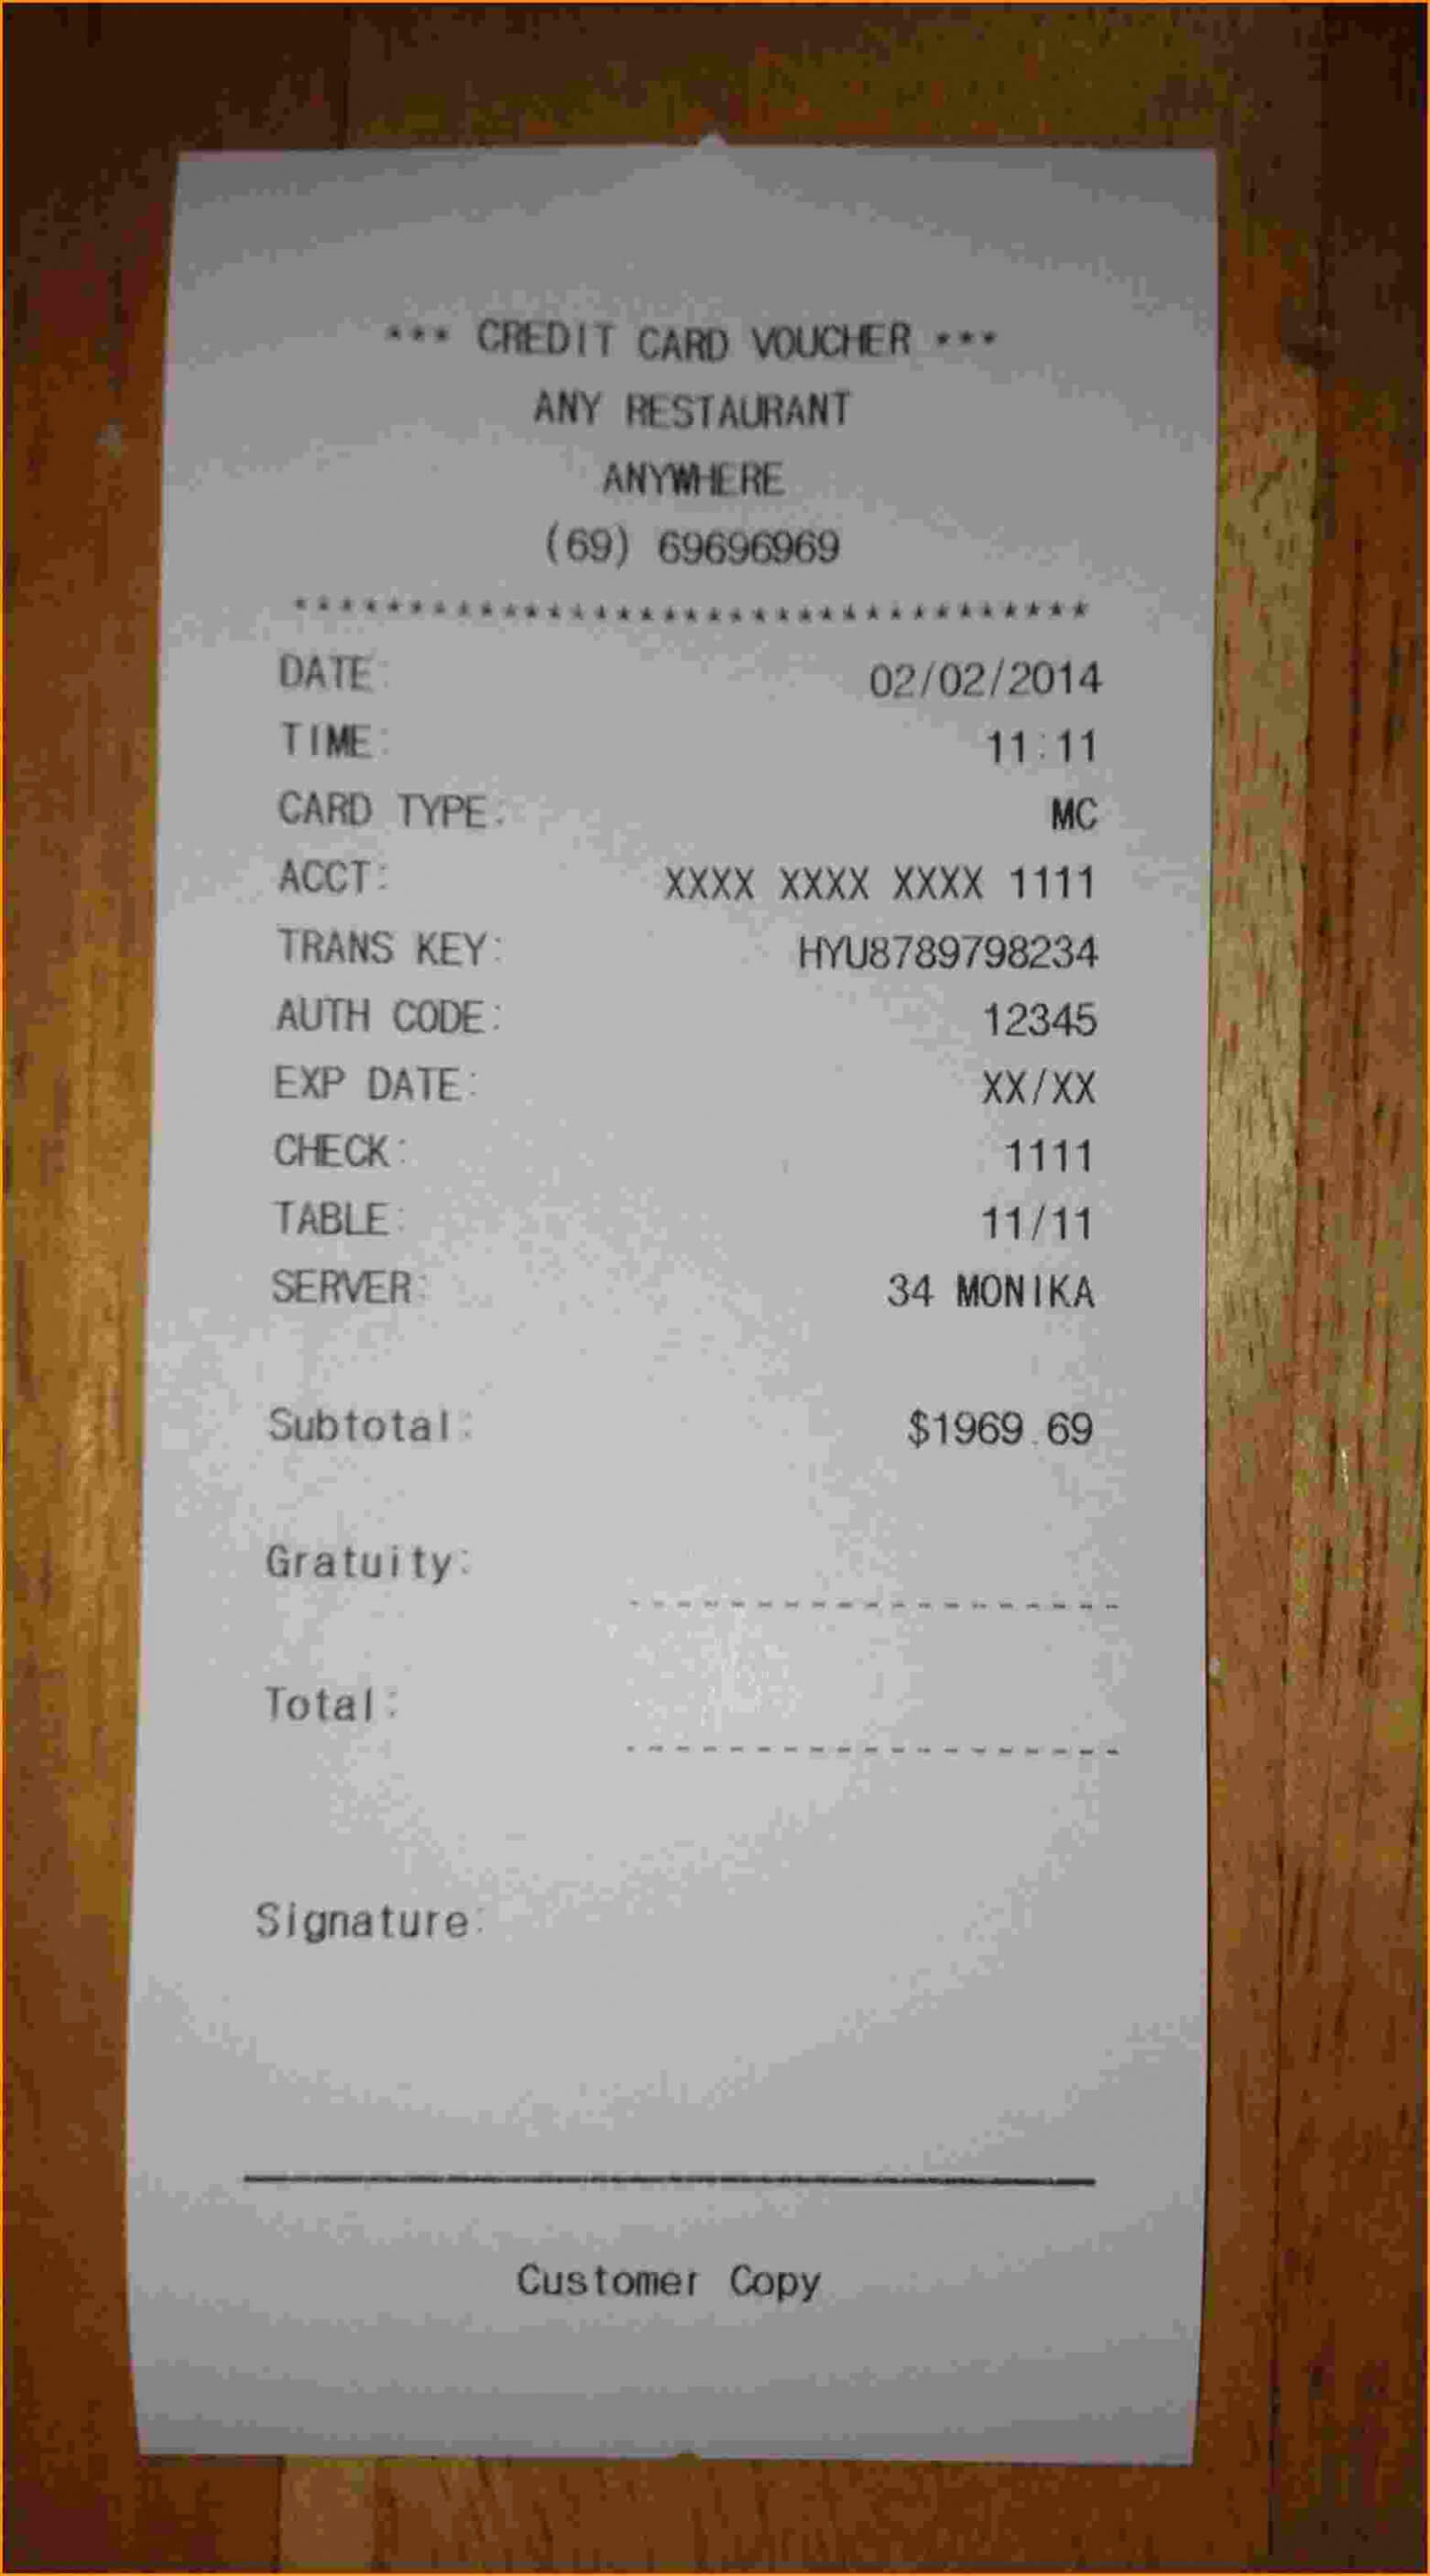 12 Store Receipt Template Invoice Template Download (Fake with regard to Fake Credit Card Receipt Template